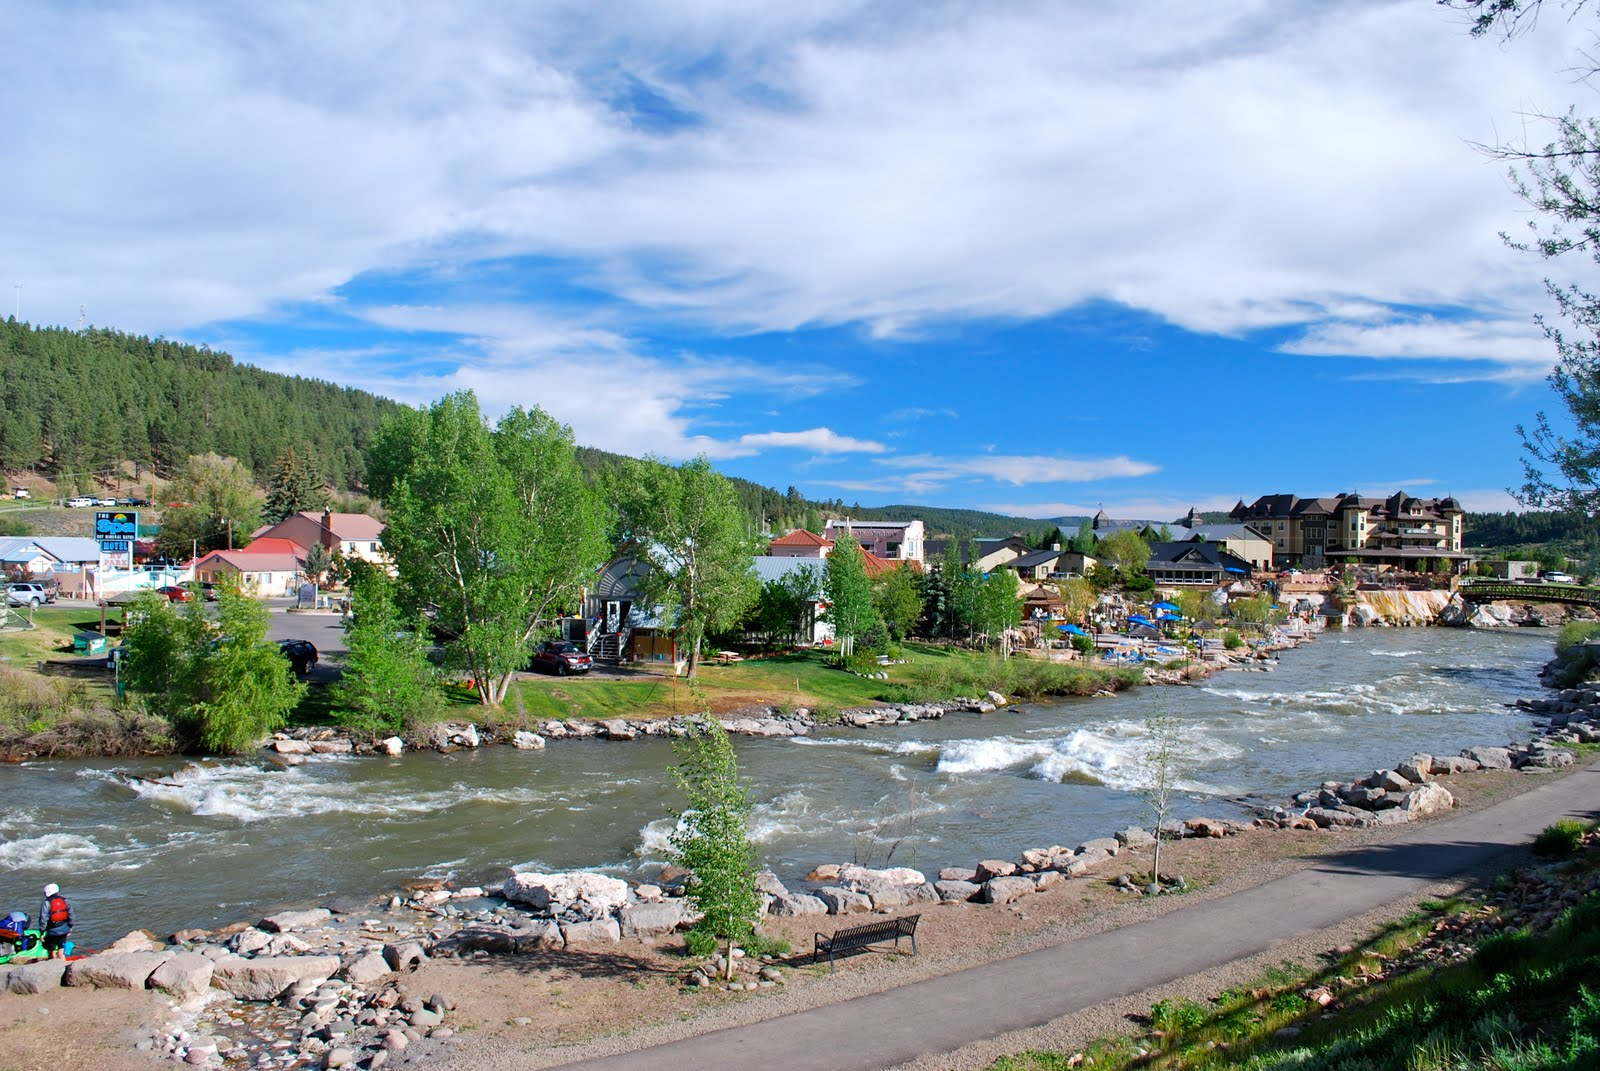 pagosa springs hindu single men Pagosa before whiteman, this was holy ground  the anasazi and many other indian people had interesting creation stories  pagosa springs journal.